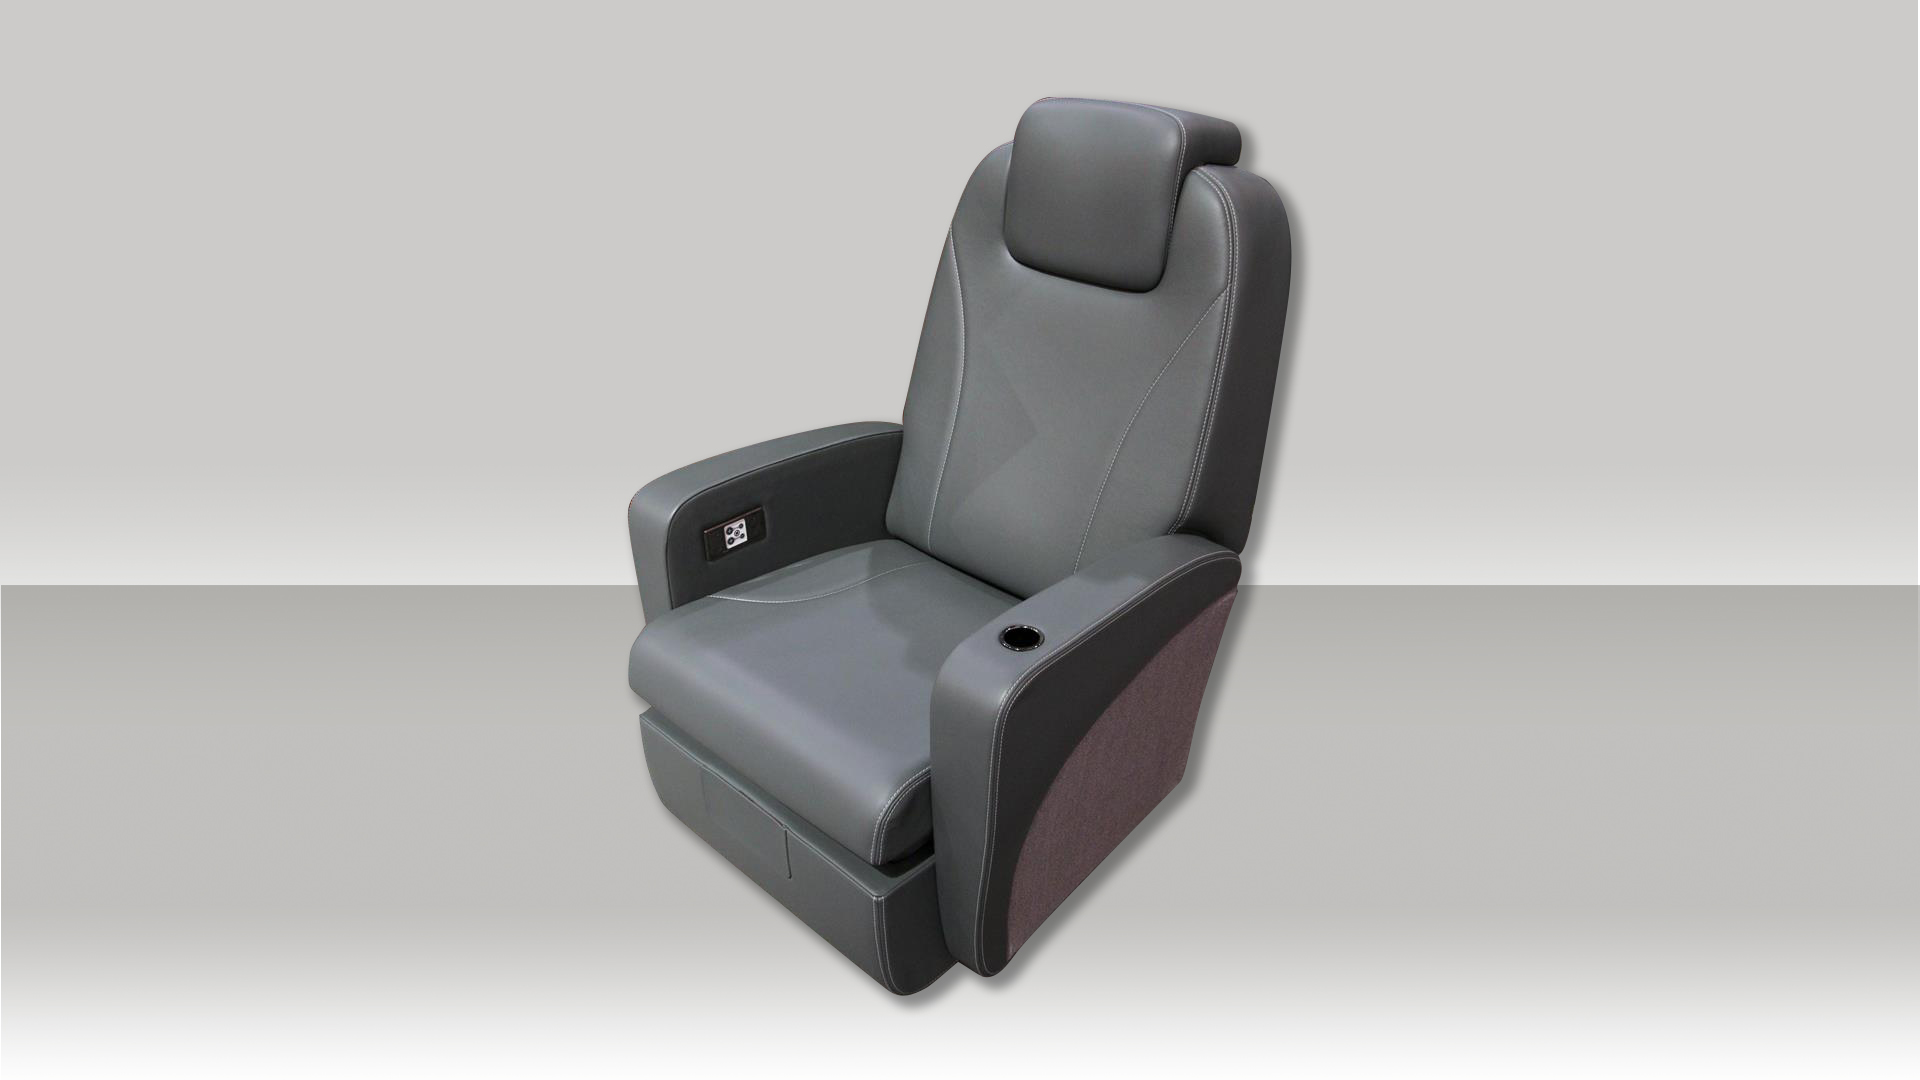 Odessey aircraft seat